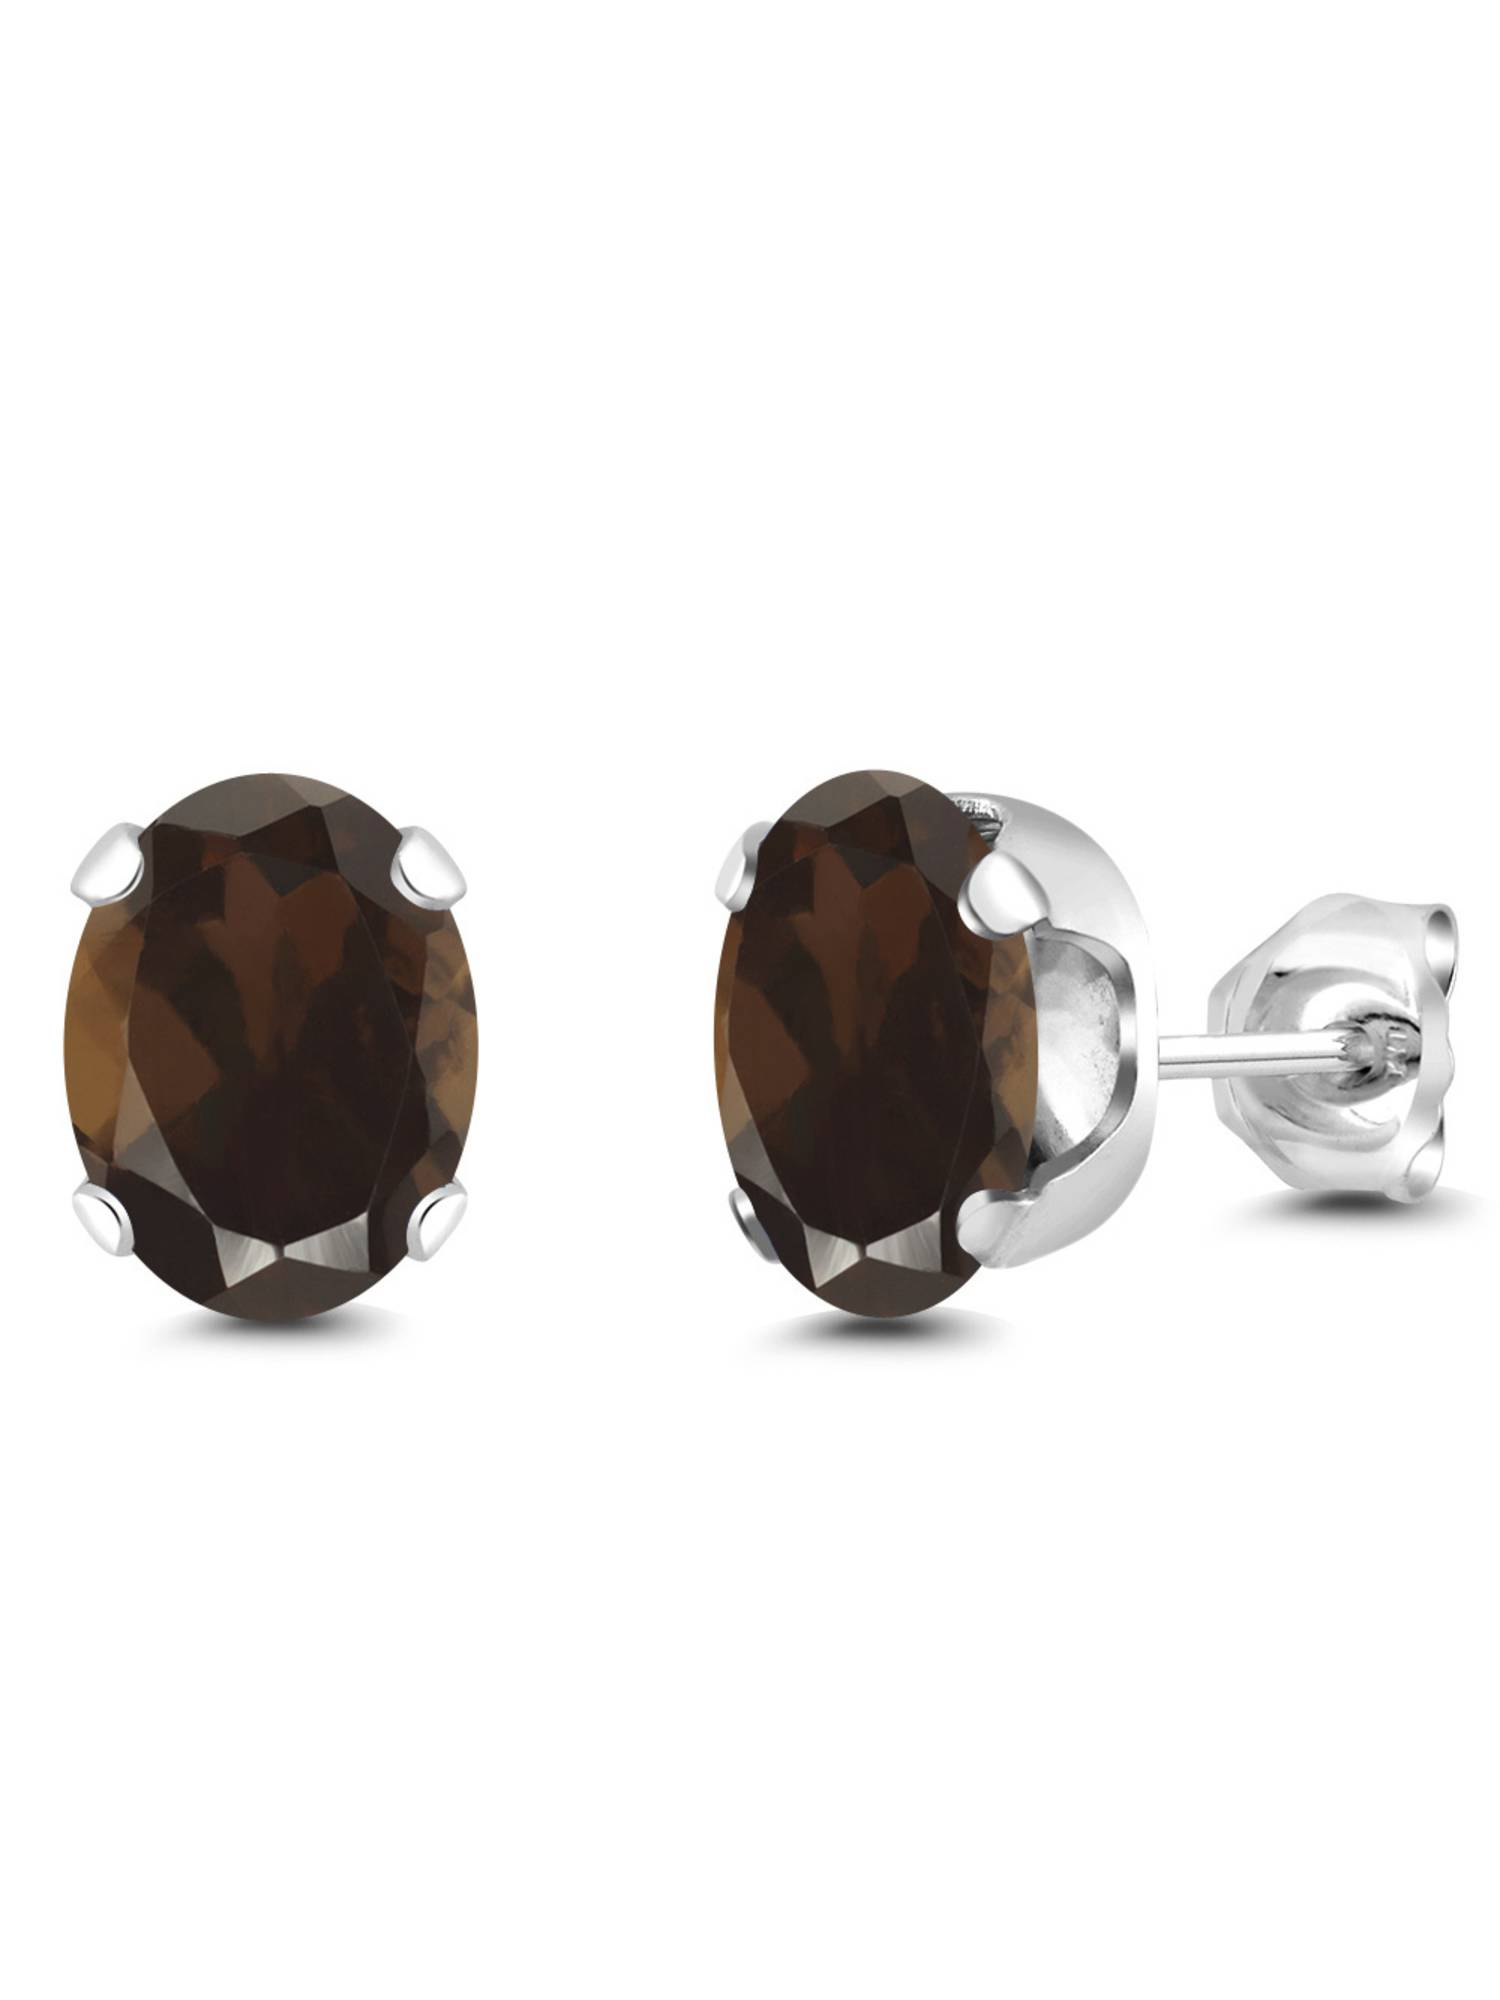 2.40 Ct Large Oval 8x6MM Smoky Quartz 4-prong Stud Earrings